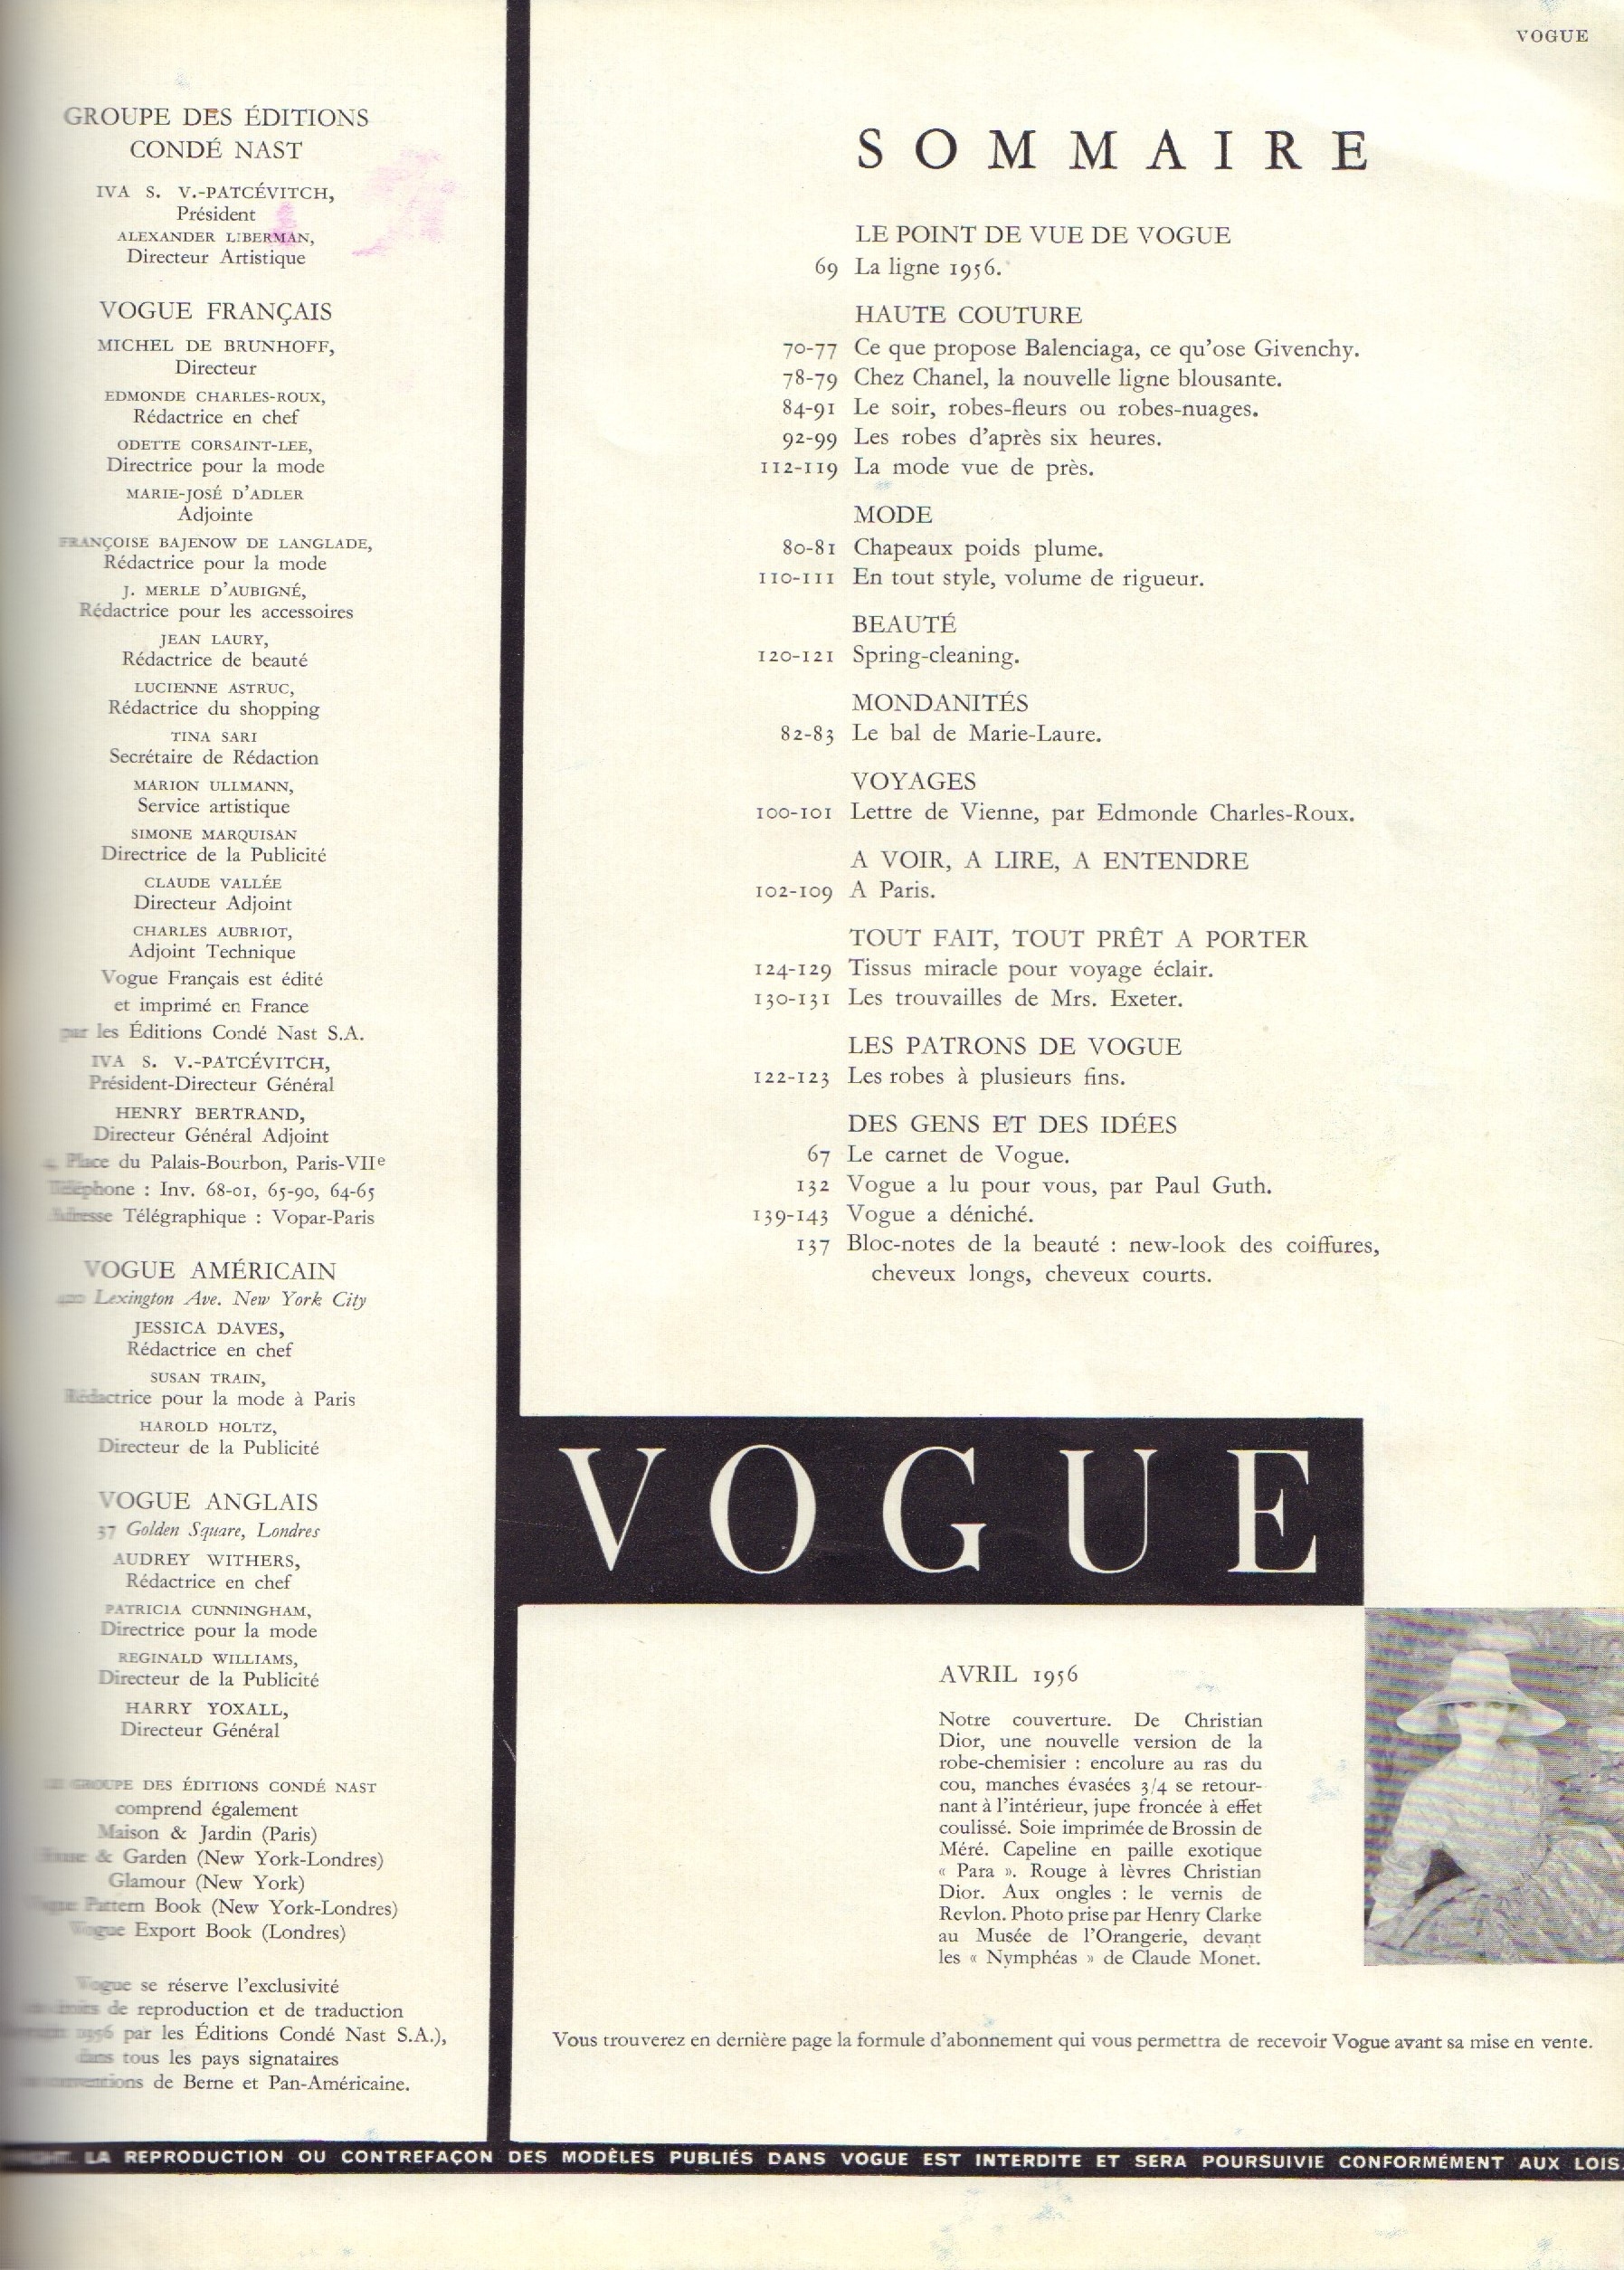 Image for Vogue, Avril 1956 - French edition (April)